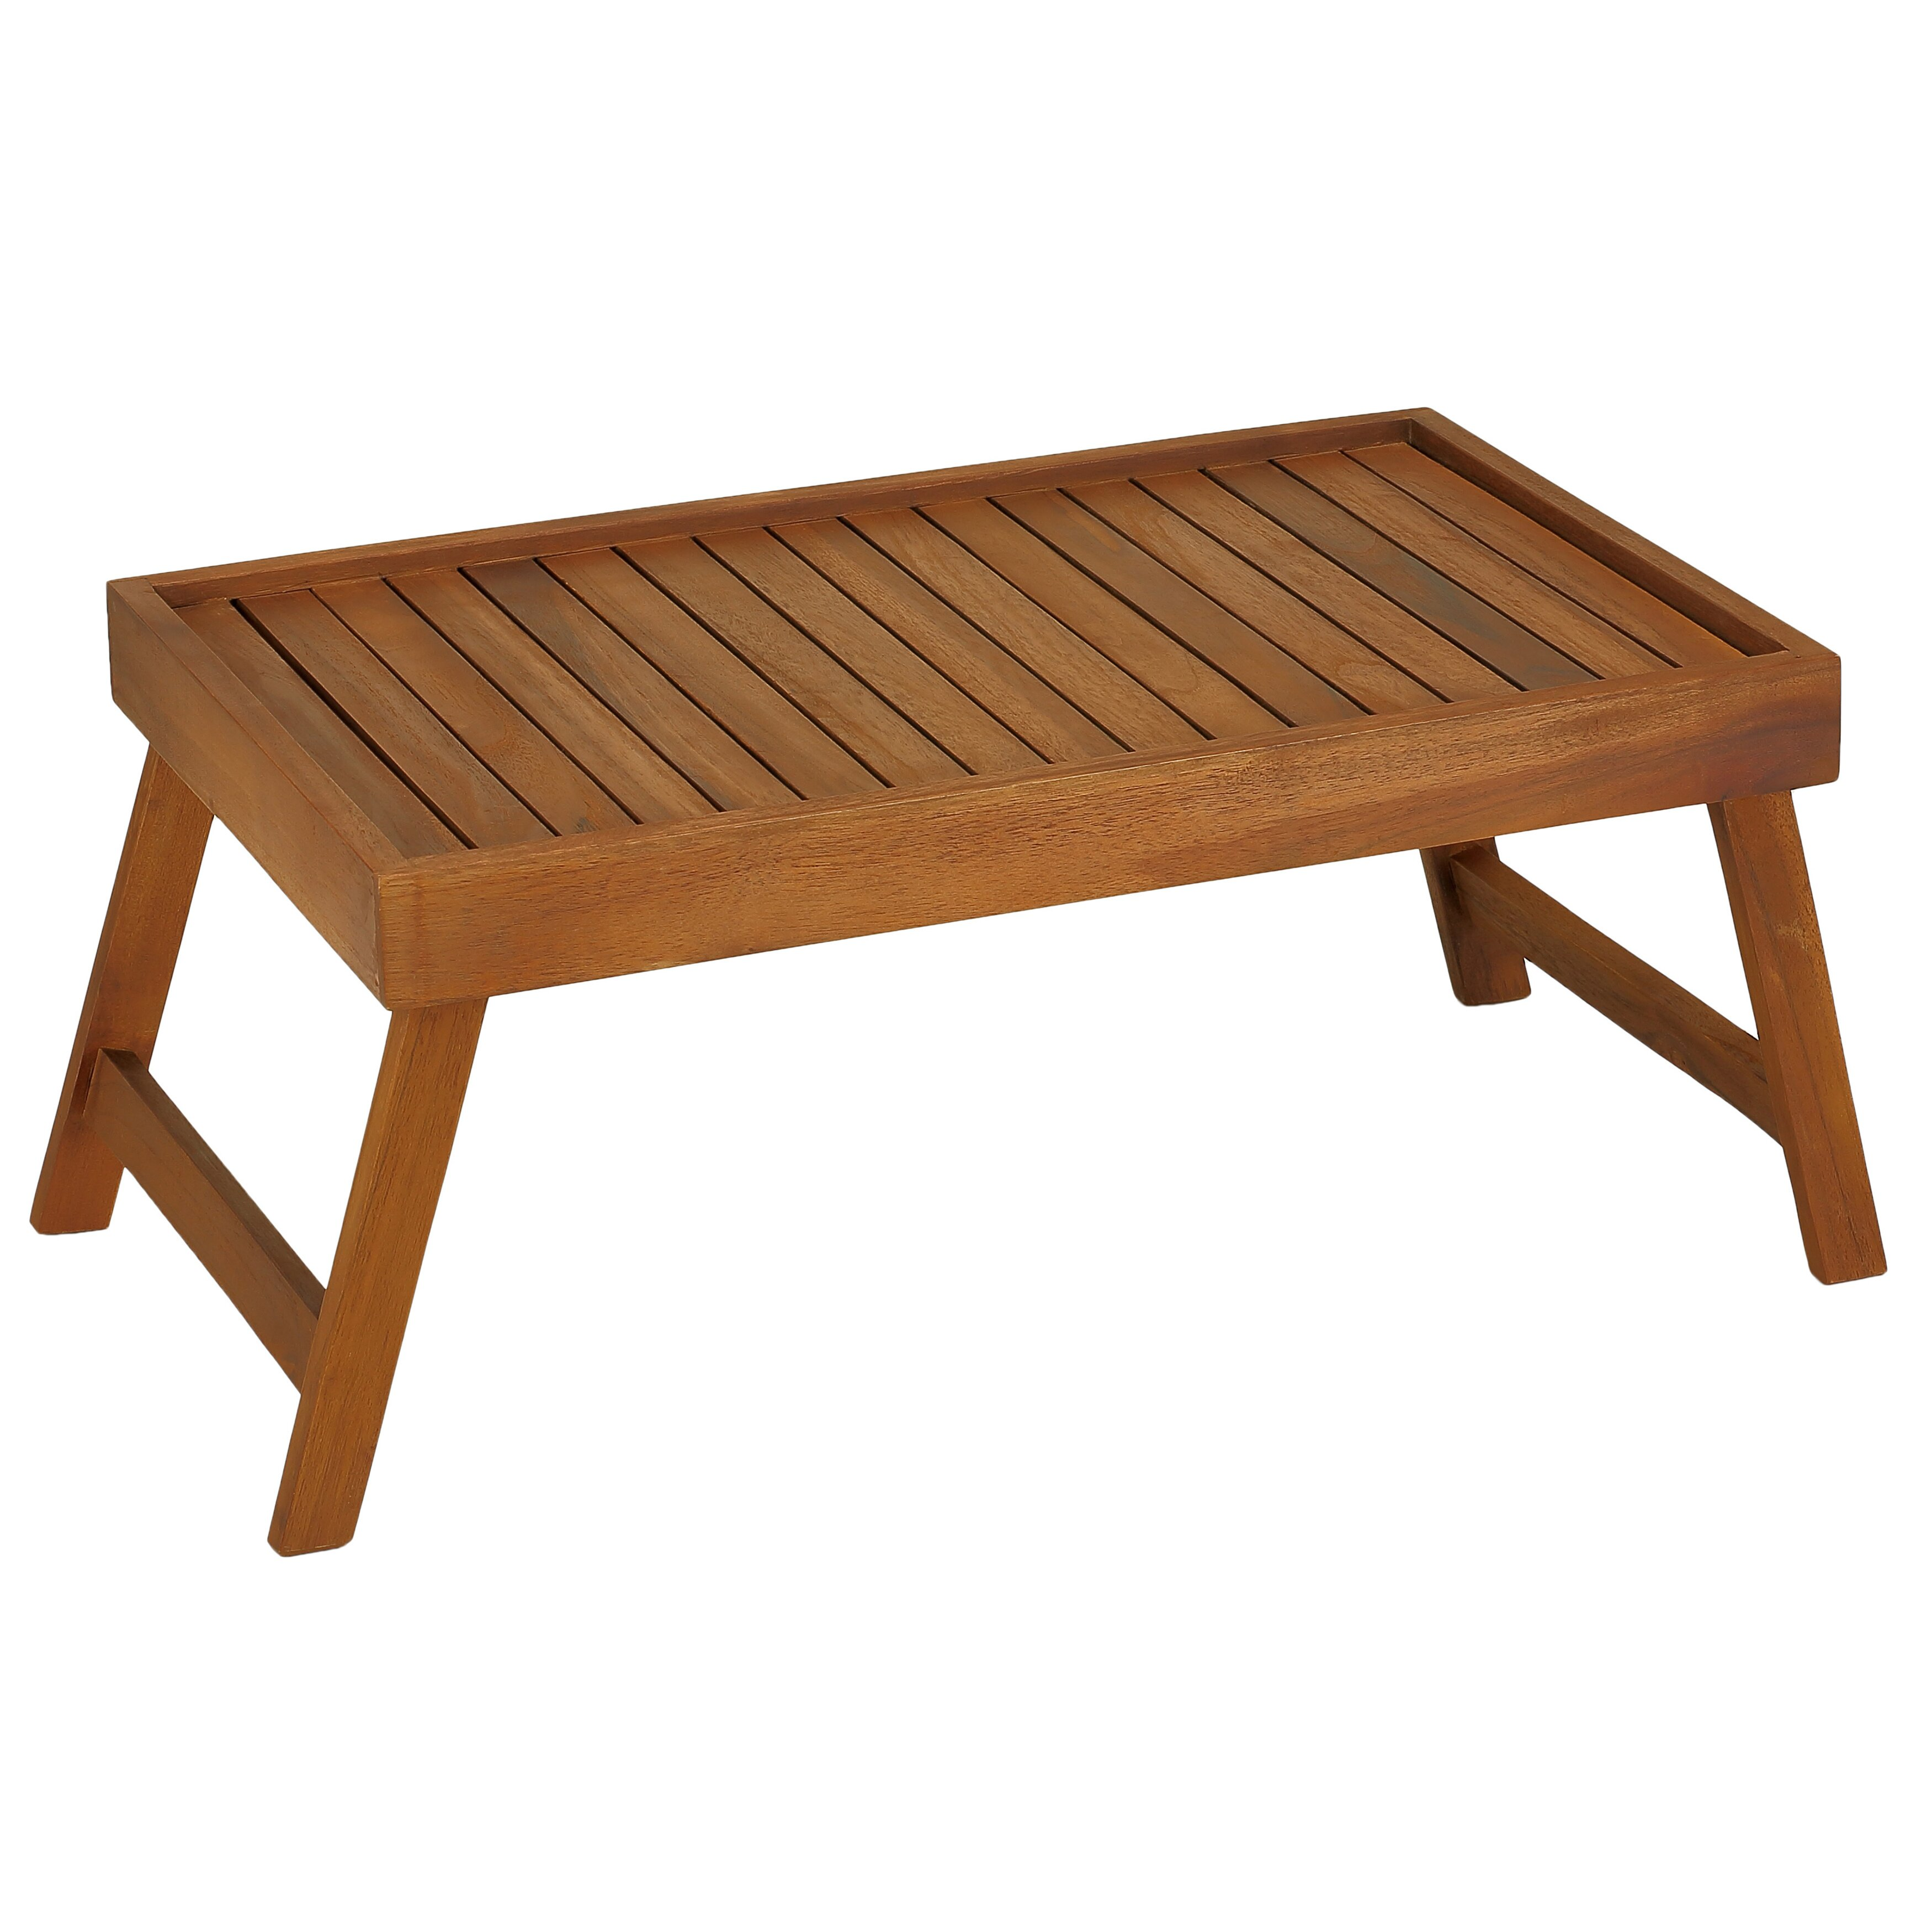 Superb img of Coco Bed Tray Table in Solid Teak Wood by BareDecor with #472714 color and 3500x3500 pixels